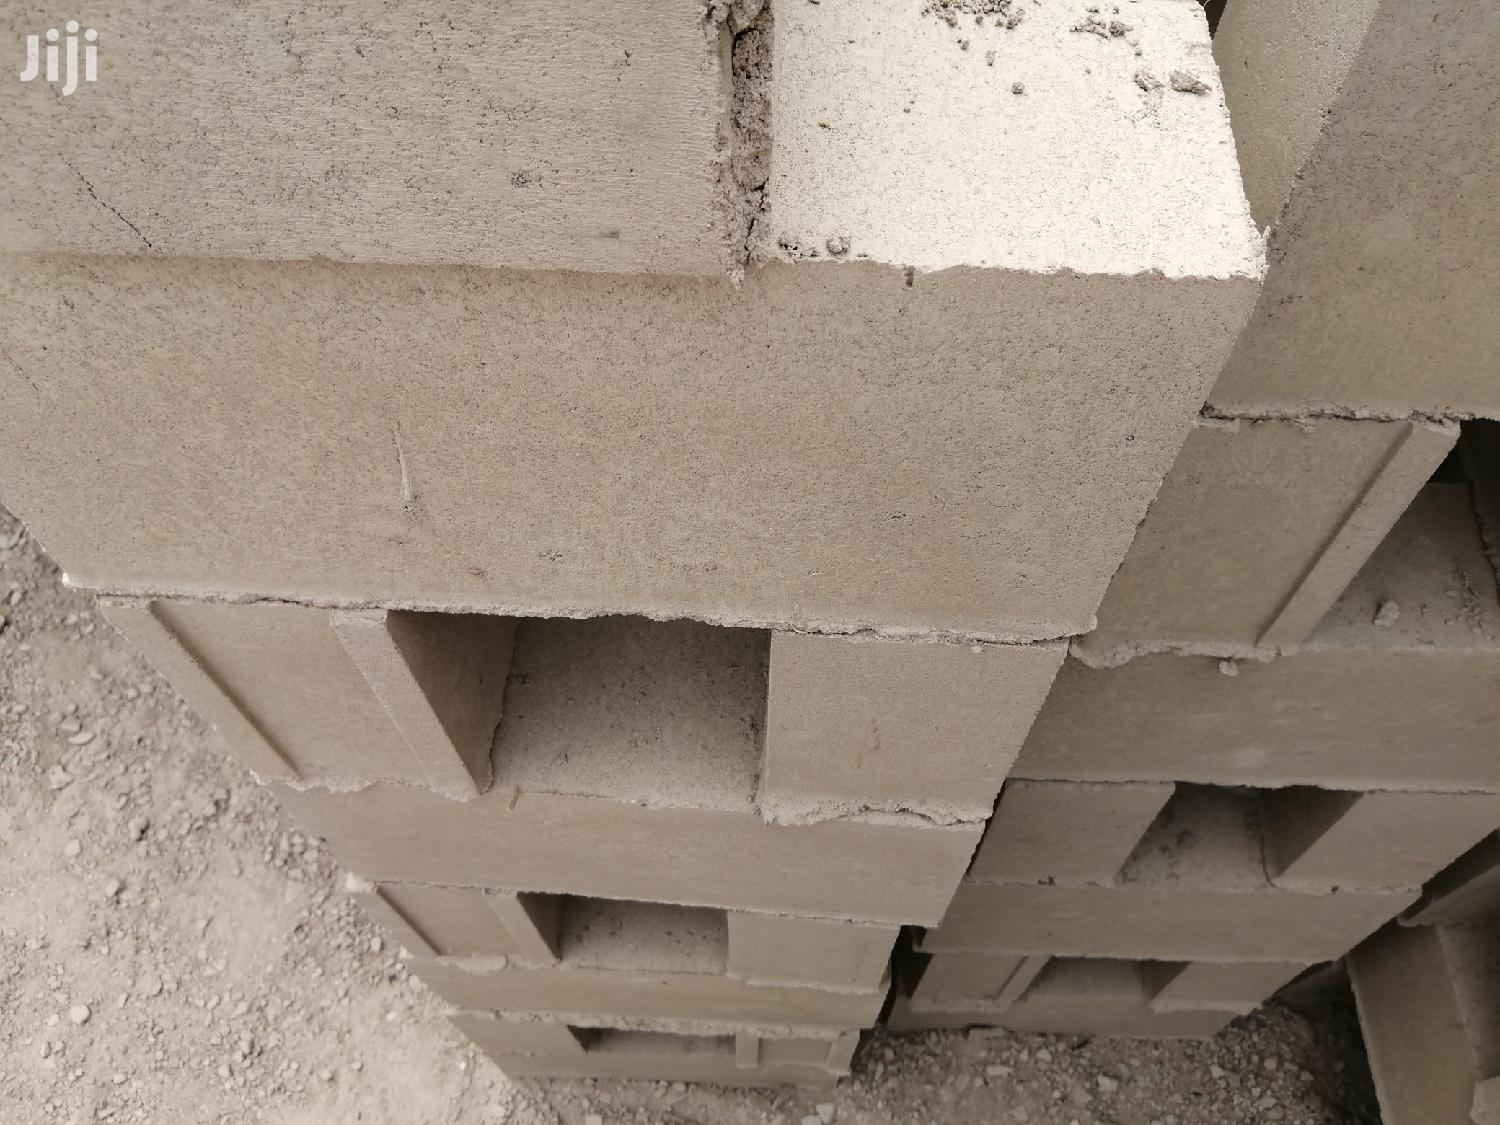 Quality 5 Inches Sand Solid Blocks Gh¢ 2.50 | Building Materials for sale in Ga West Municipal, Greater Accra, Ghana